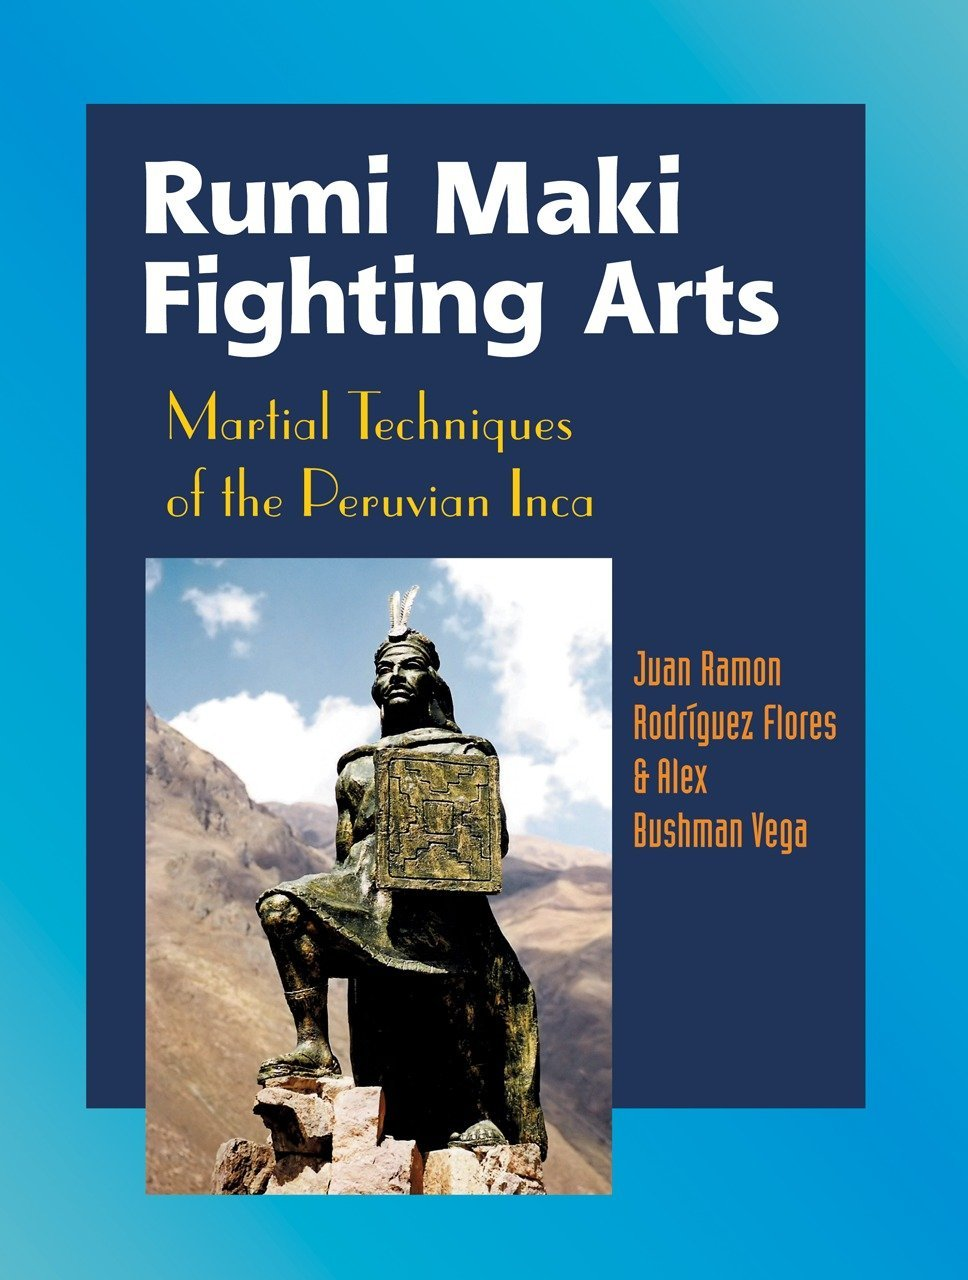 Rumi Maki Fighting Arts: Martial Techniques of the Peruvian Inca: The Complete History and Martial Techniques of the Peruvian Inca: Amazon.es: Juan Ramon ...